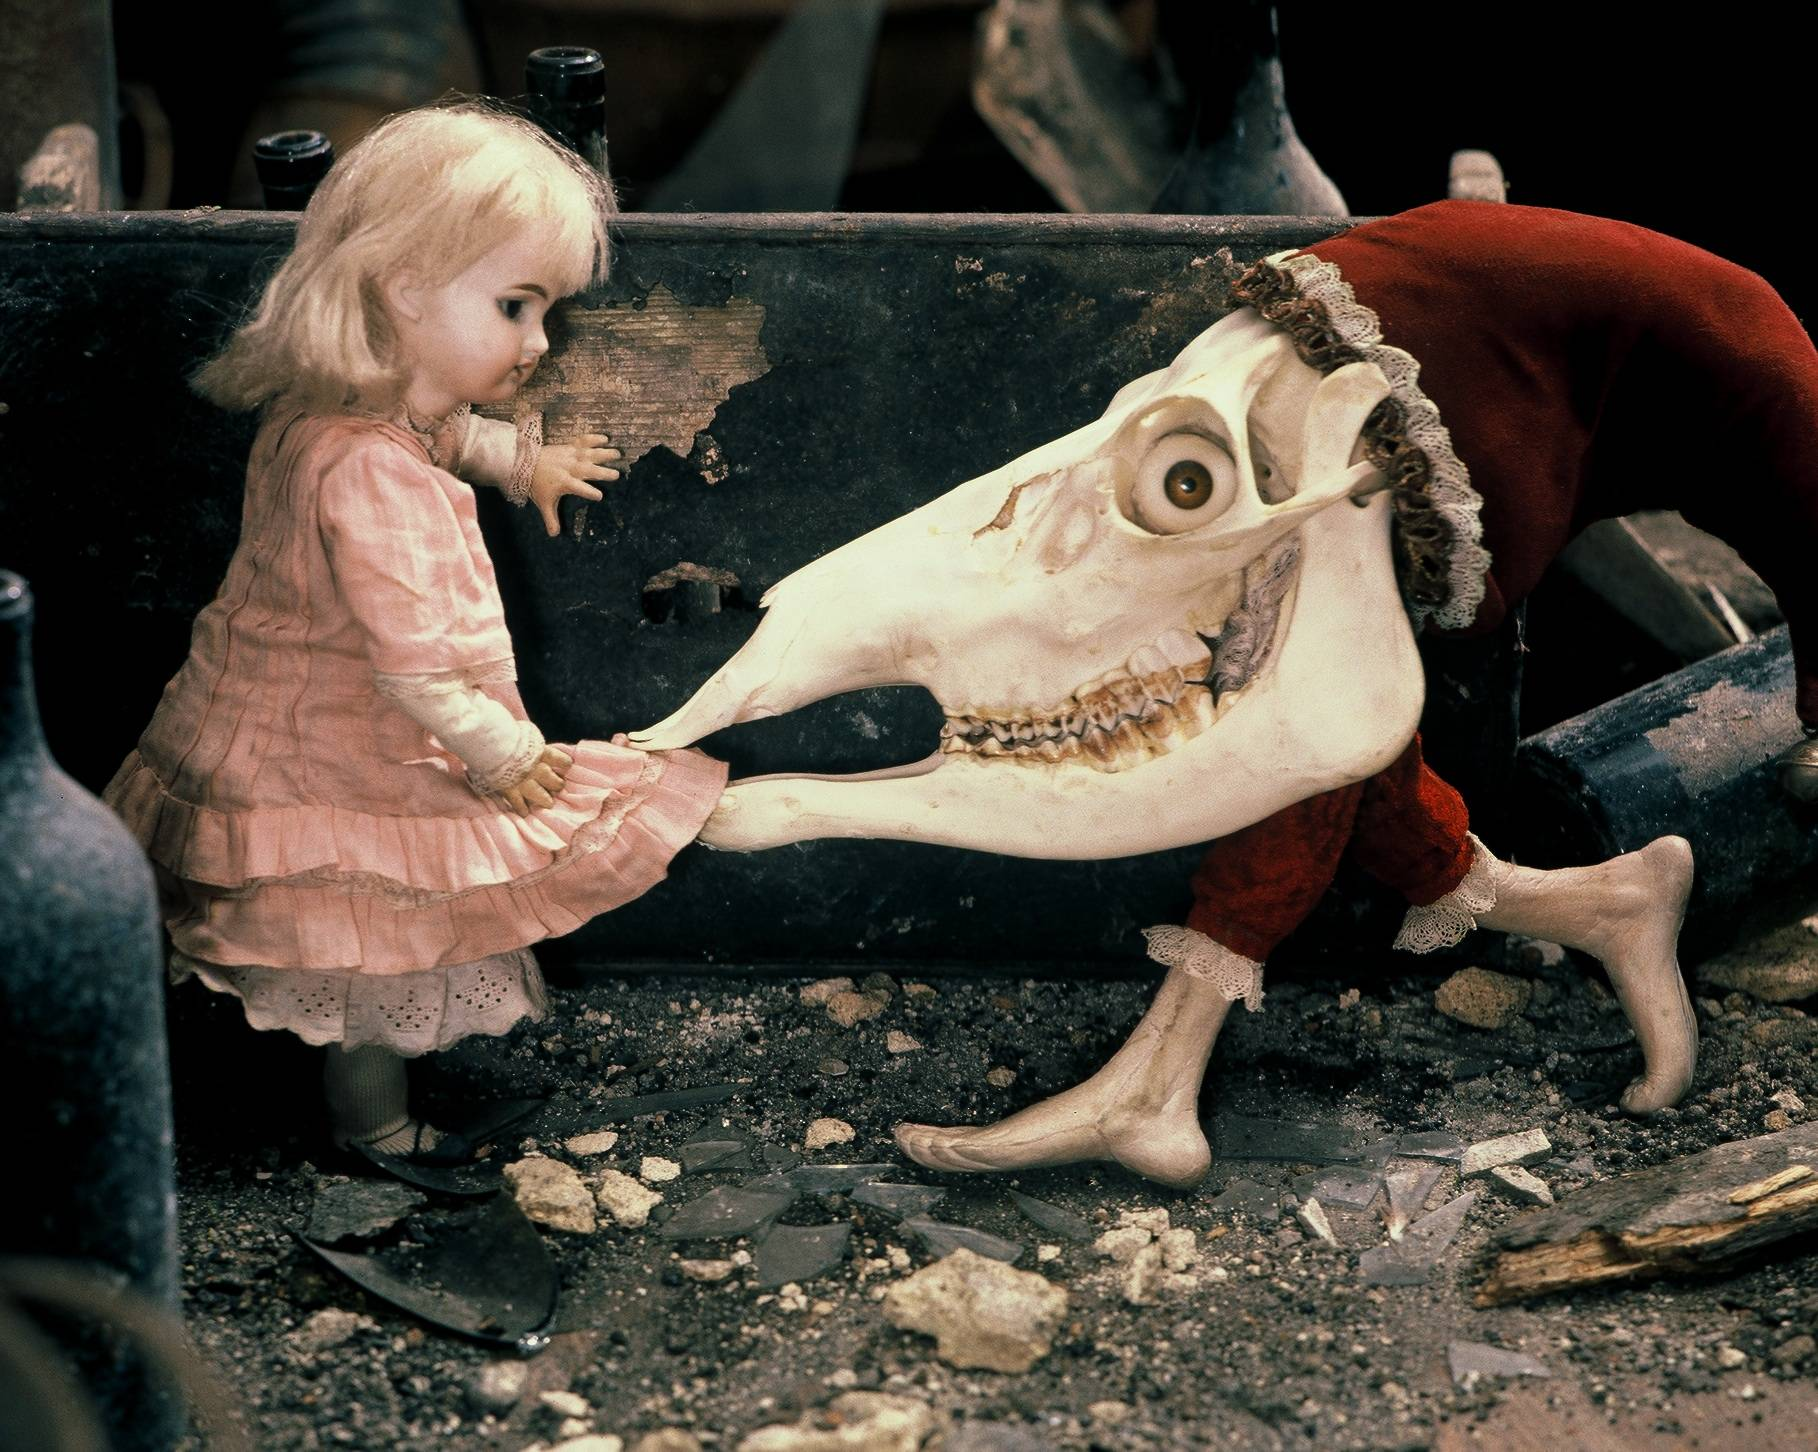 Alice - Jan svankmajer